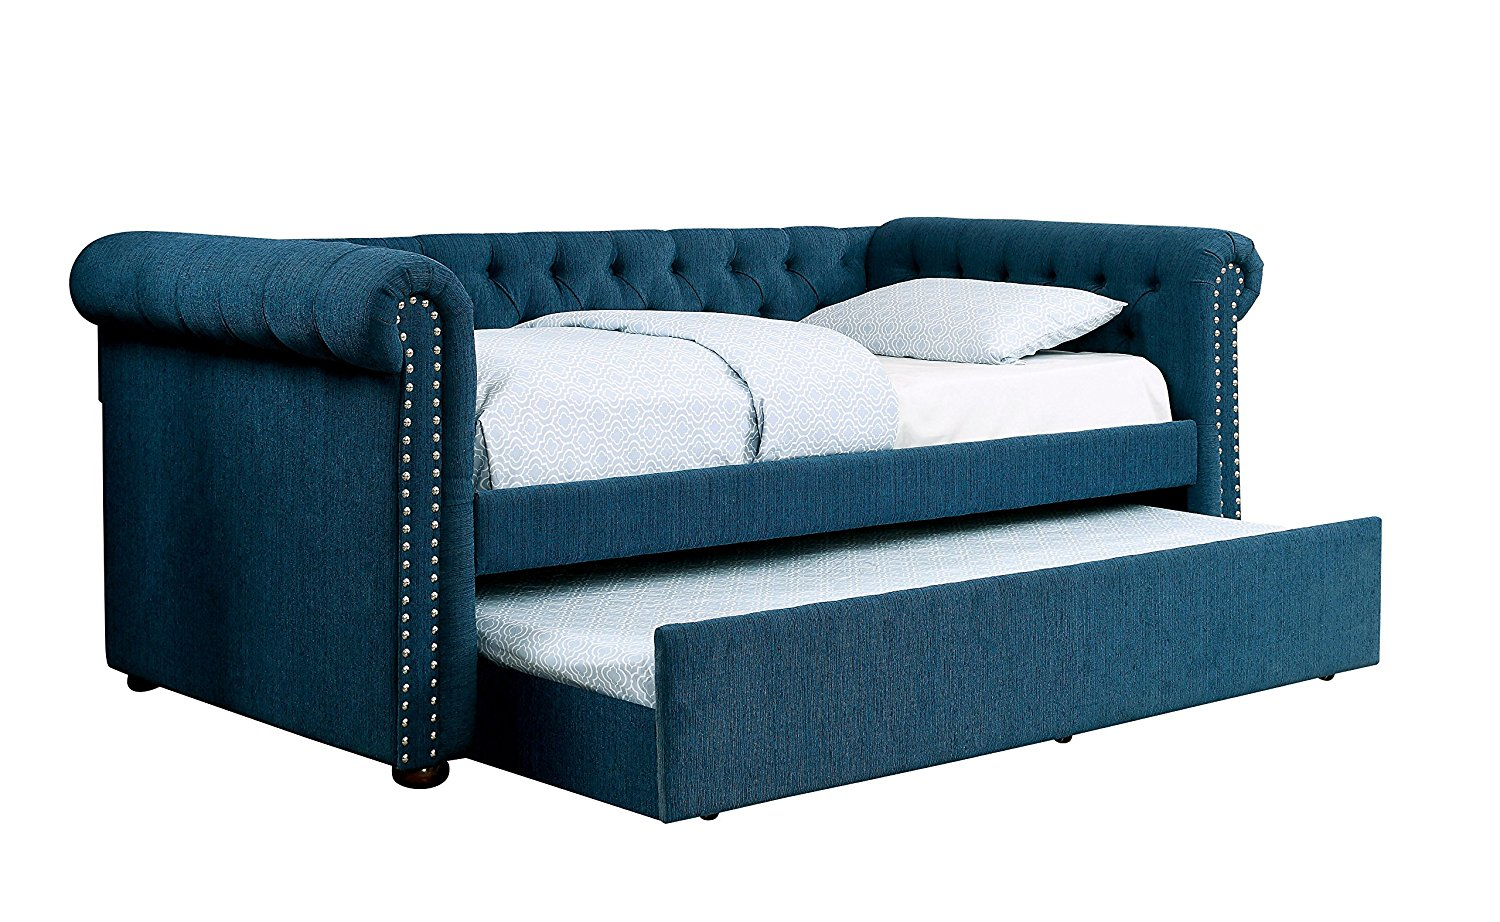 HOMES: Inside + Out Justina Transitional Daybed with Trundle, Twin, Dark Teal